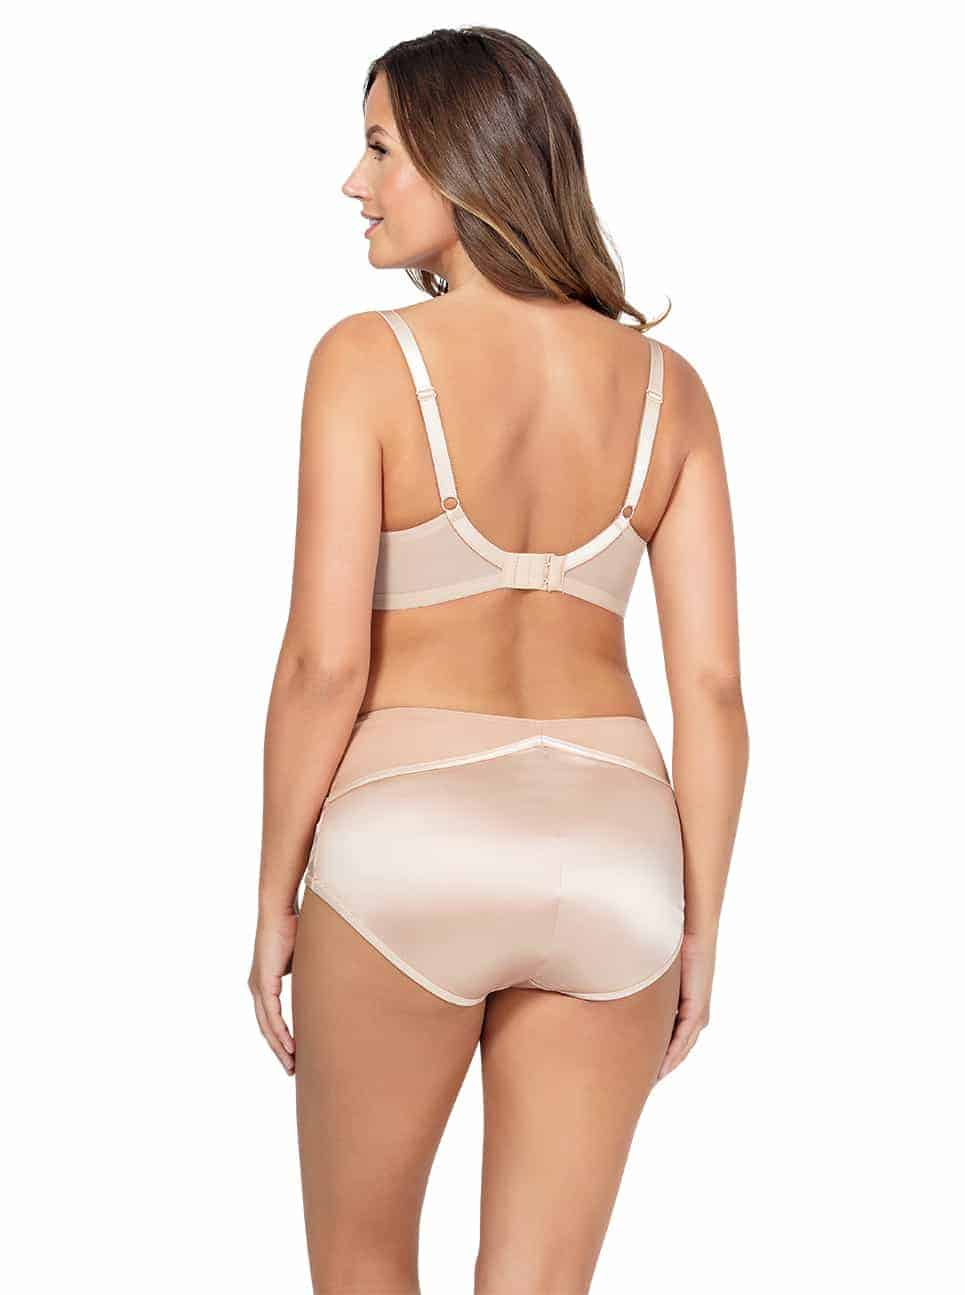 Charlotte PaddedBra6901 HighwaistBrief6917 TrueNude Back3 copy - Charlotte Highwaist Brief - True Nude - 6917